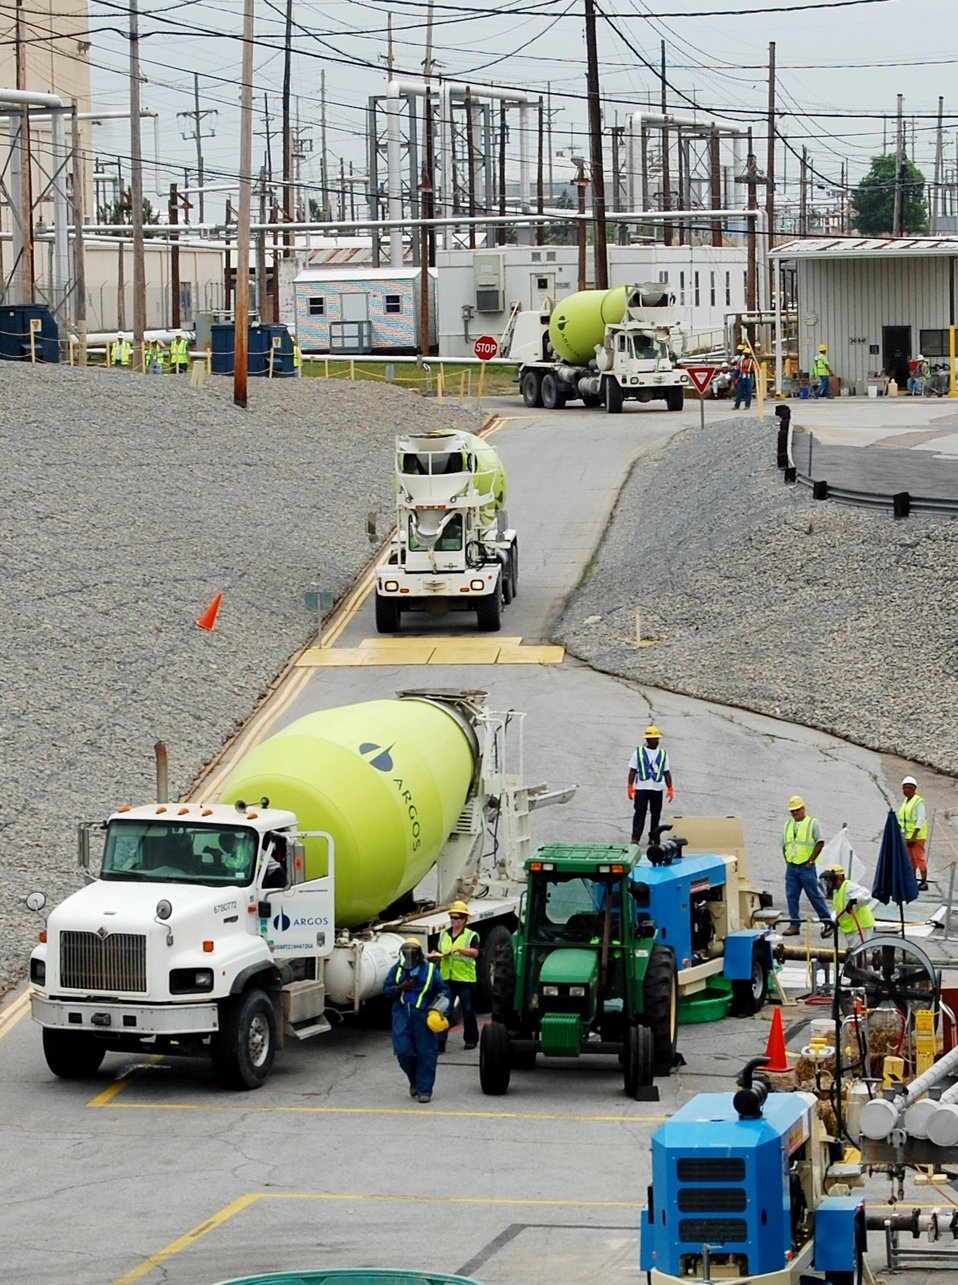 Workers Pour 1 Million Gallons of Grout into Massive Tanks